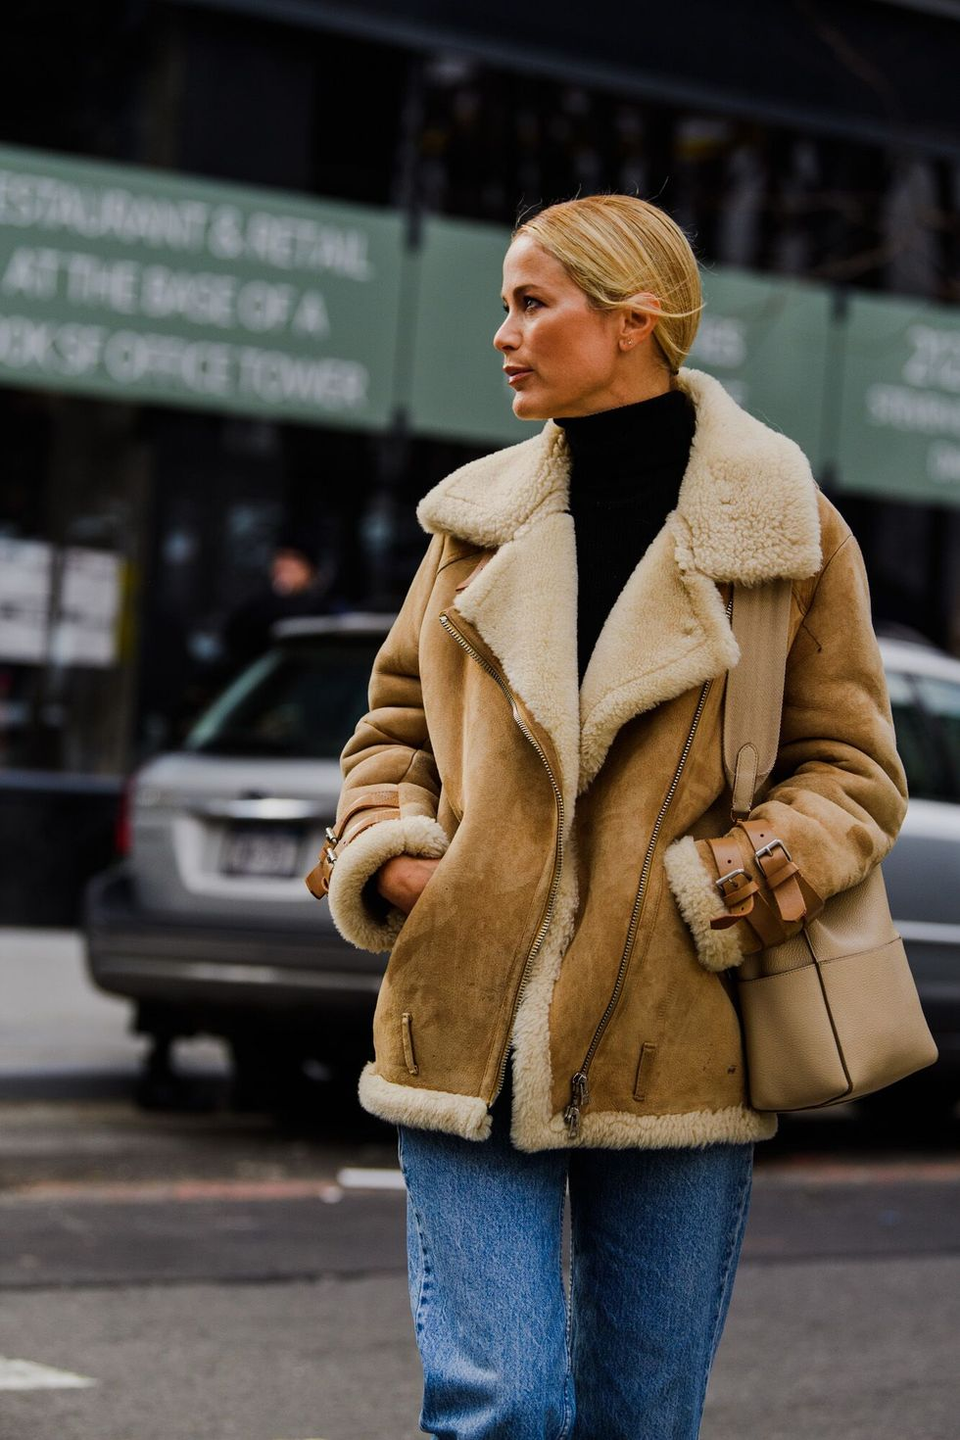 <p>Keep it cozy in an oversized shearling-lined jacket. The outerwear looks best when paired with blue jeans or a floral feminine dress for contrast.</p>